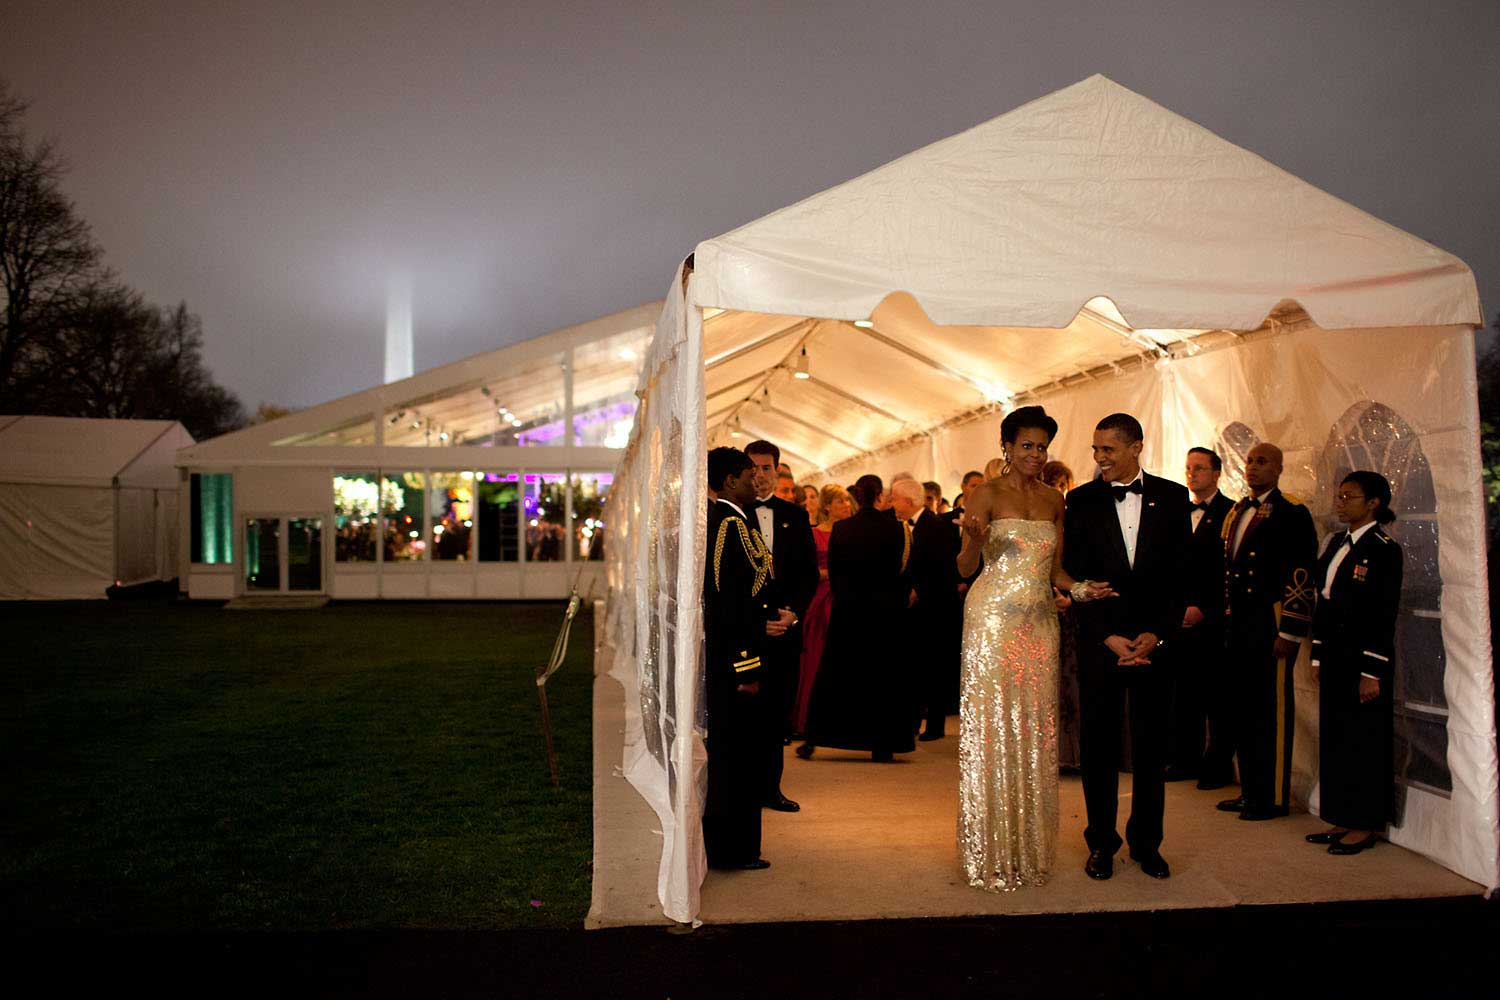 """The President and First Lady wait for Indian Prime Minister Singh's motorcade to depart the White House at the conclusion of the first official state dinner for the Obama administration, Nov. 24, 2009. The dinner was held in a tent on the South Lawn. The mist and fog made for an interesting scene, even obscuring the top of the Washington Monument in the background."""